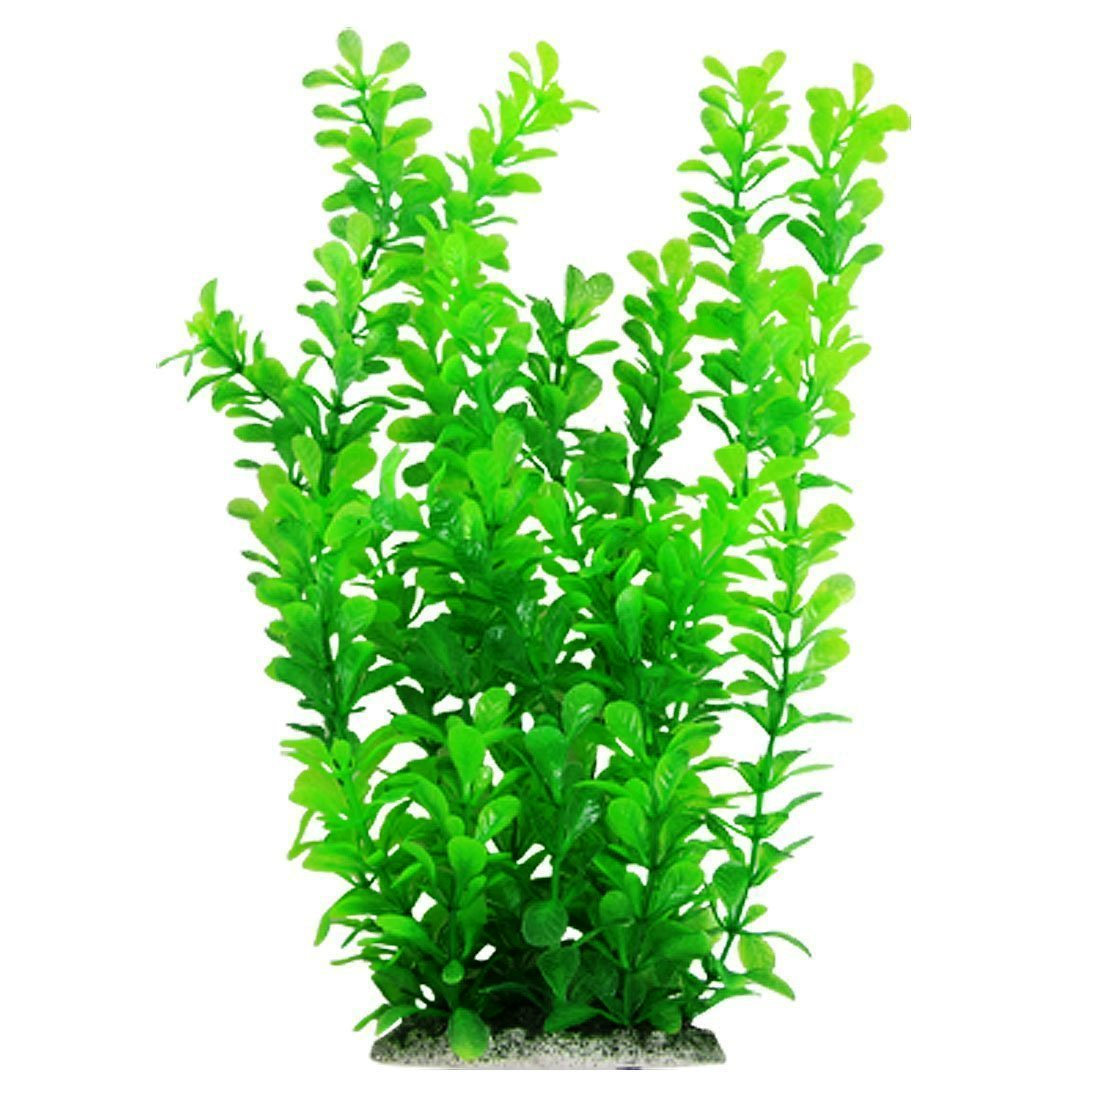 Set of 3 Aquarium Wall of Plants Green, Purple, and Green with Yellow by Aquarium Creations ACUS00996 ACUS00995 ACUS00997